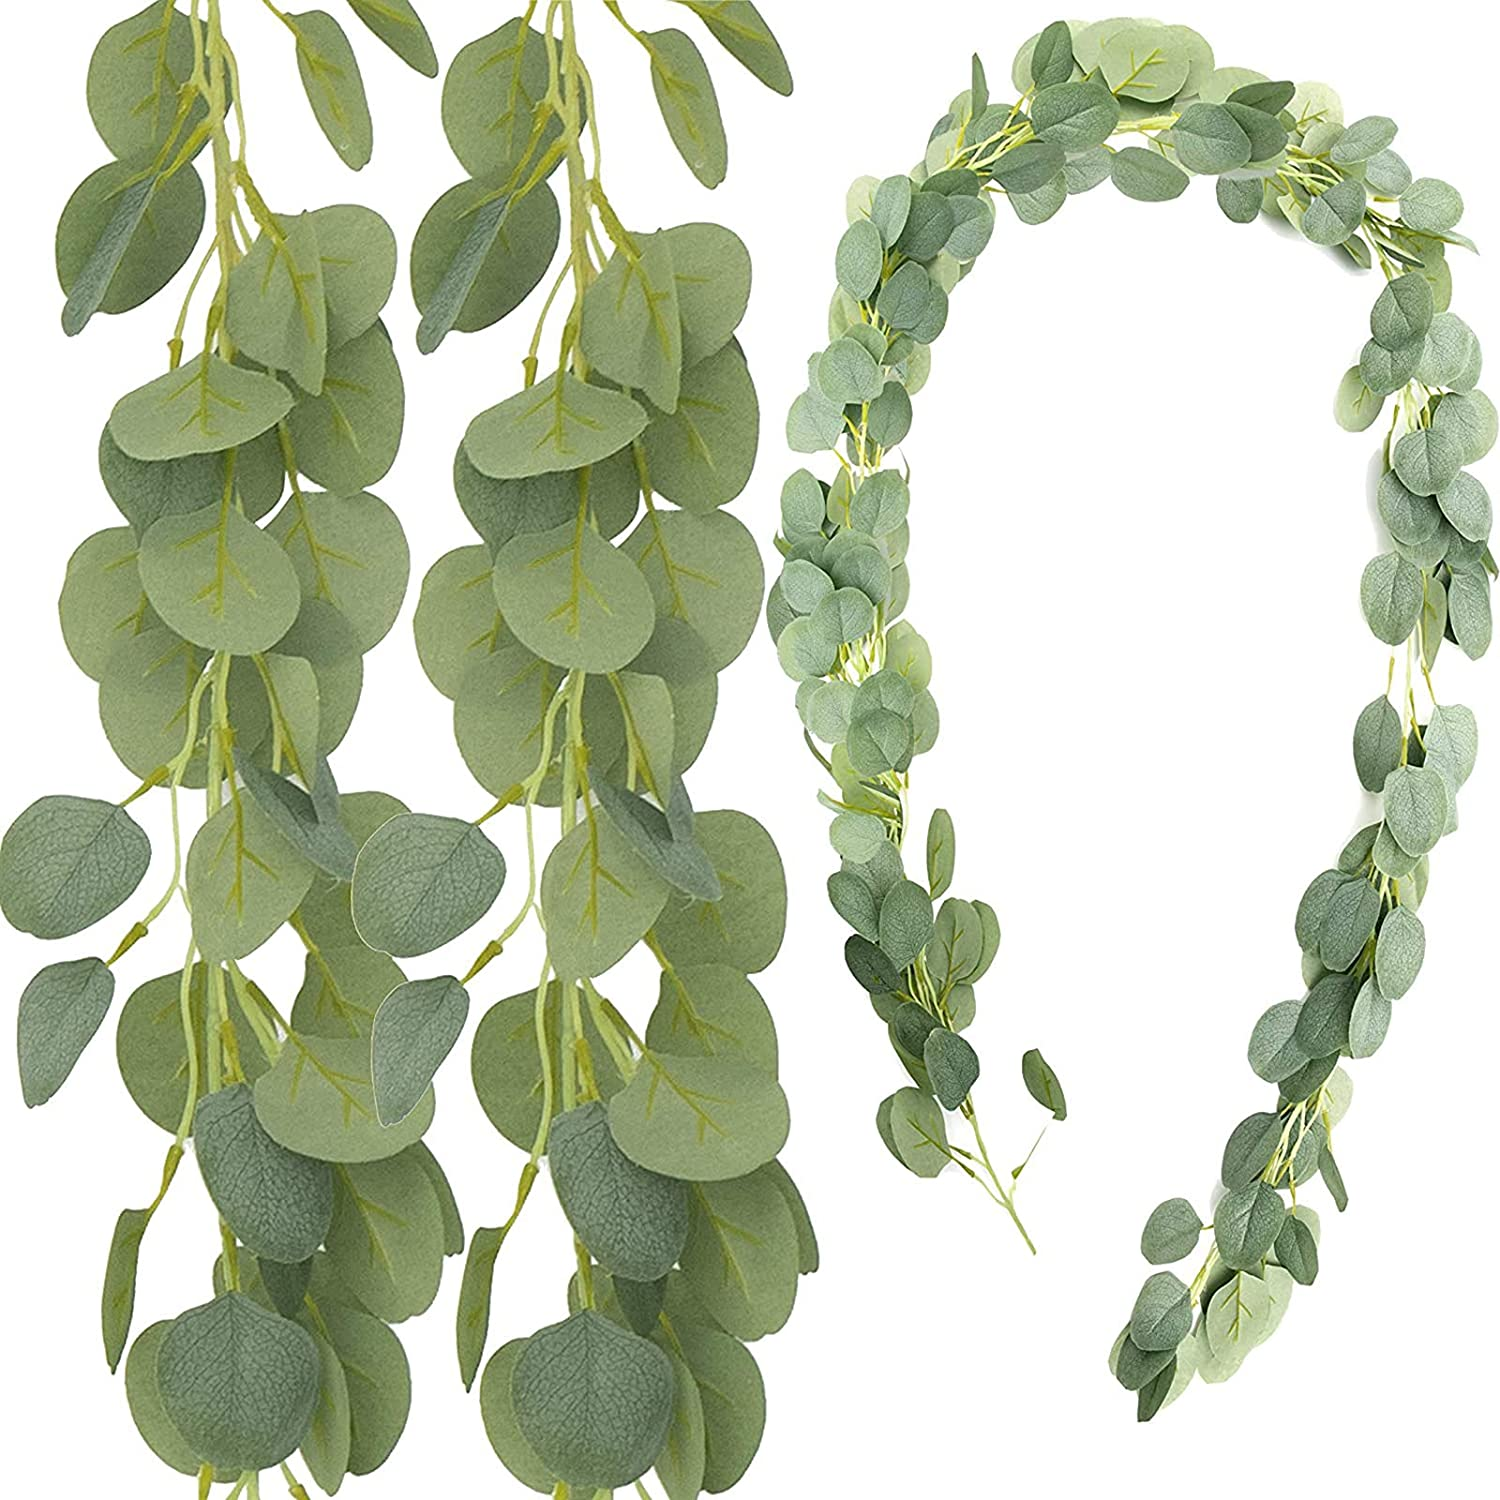 HANTAJANSS 3 Packs Artificial Eucalyptus Garland, Frosted Greenery Leaves Vines, Faux Silk Foliage for Wedding Backdrop Table Arch Wall Décor 6 1/2FT